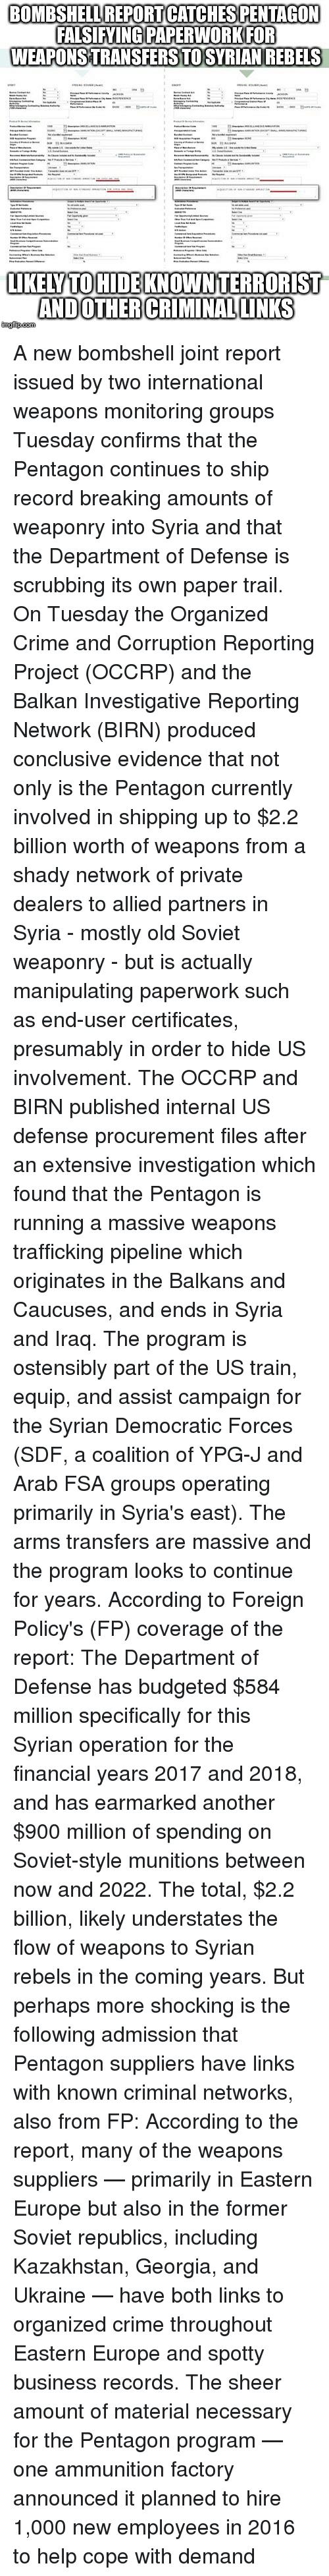 Crime, Memes, and 2017: BOMBSHELL REPORT CATCHES PENTAGON  FAISIYINGPAPERWORKFOR  WEAPONSTRANSFERS TOSYRIAN REBELS  LIKELYTOHIDE KNOWNTERRORIST  ANDOTHERCRIMINALLUNKS A new bombshell joint report issued by two international weapons monitoring groups Tuesday confirms that the Pentagon continues to ship record breaking amounts of weaponry into Syria and that the Department of Defense is scrubbing its own paper trail. On Tuesday the Organized Crime and Corruption Reporting Project (OCCRP) and the Balkan Investigative Reporting Network (BIRN) produced conclusive evidence that not only is the Pentagon currently involved in shipping up to $2.2 billion worth of weapons from a shady network of private dealers to allied partners in Syria - mostly old Soviet weaponry - but is actually manipulating paperwork such as end-user certificates, presumably in order to hide US involvement. The OCCRP and BIRN published internal US defense procurement files after an extensive investigation which found that the Pentagon is running a massive weapons trafficking pipeline which originates in the Balkans and Caucuses, and ends in Syria and Iraq. The program is ostensibly part of the US train, equip, and assist campaign for the Syrian Democratic Forces (SDF, a coalition of YPG-J and Arab FSA groups operating primarily in Syria's east). The arms transfers are massive and the program looks to continue for years. According to Foreign Policy's (FP) coverage of the report: The Department of Defense has budgeted $584 million specifically for this Syrian operation for the financial years 2017 and 2018, and has earmarked another $900 million of spending on Soviet-style munitions between now and 2022. The total, $2.2 billion, likely understates the flow of weapons to Syrian rebels in the coming years. But perhaps more shocking is the following admission that Pentagon suppliers have links with known criminal networks, also from FP: According to the report, many of the weapons suppliers — primarily in E